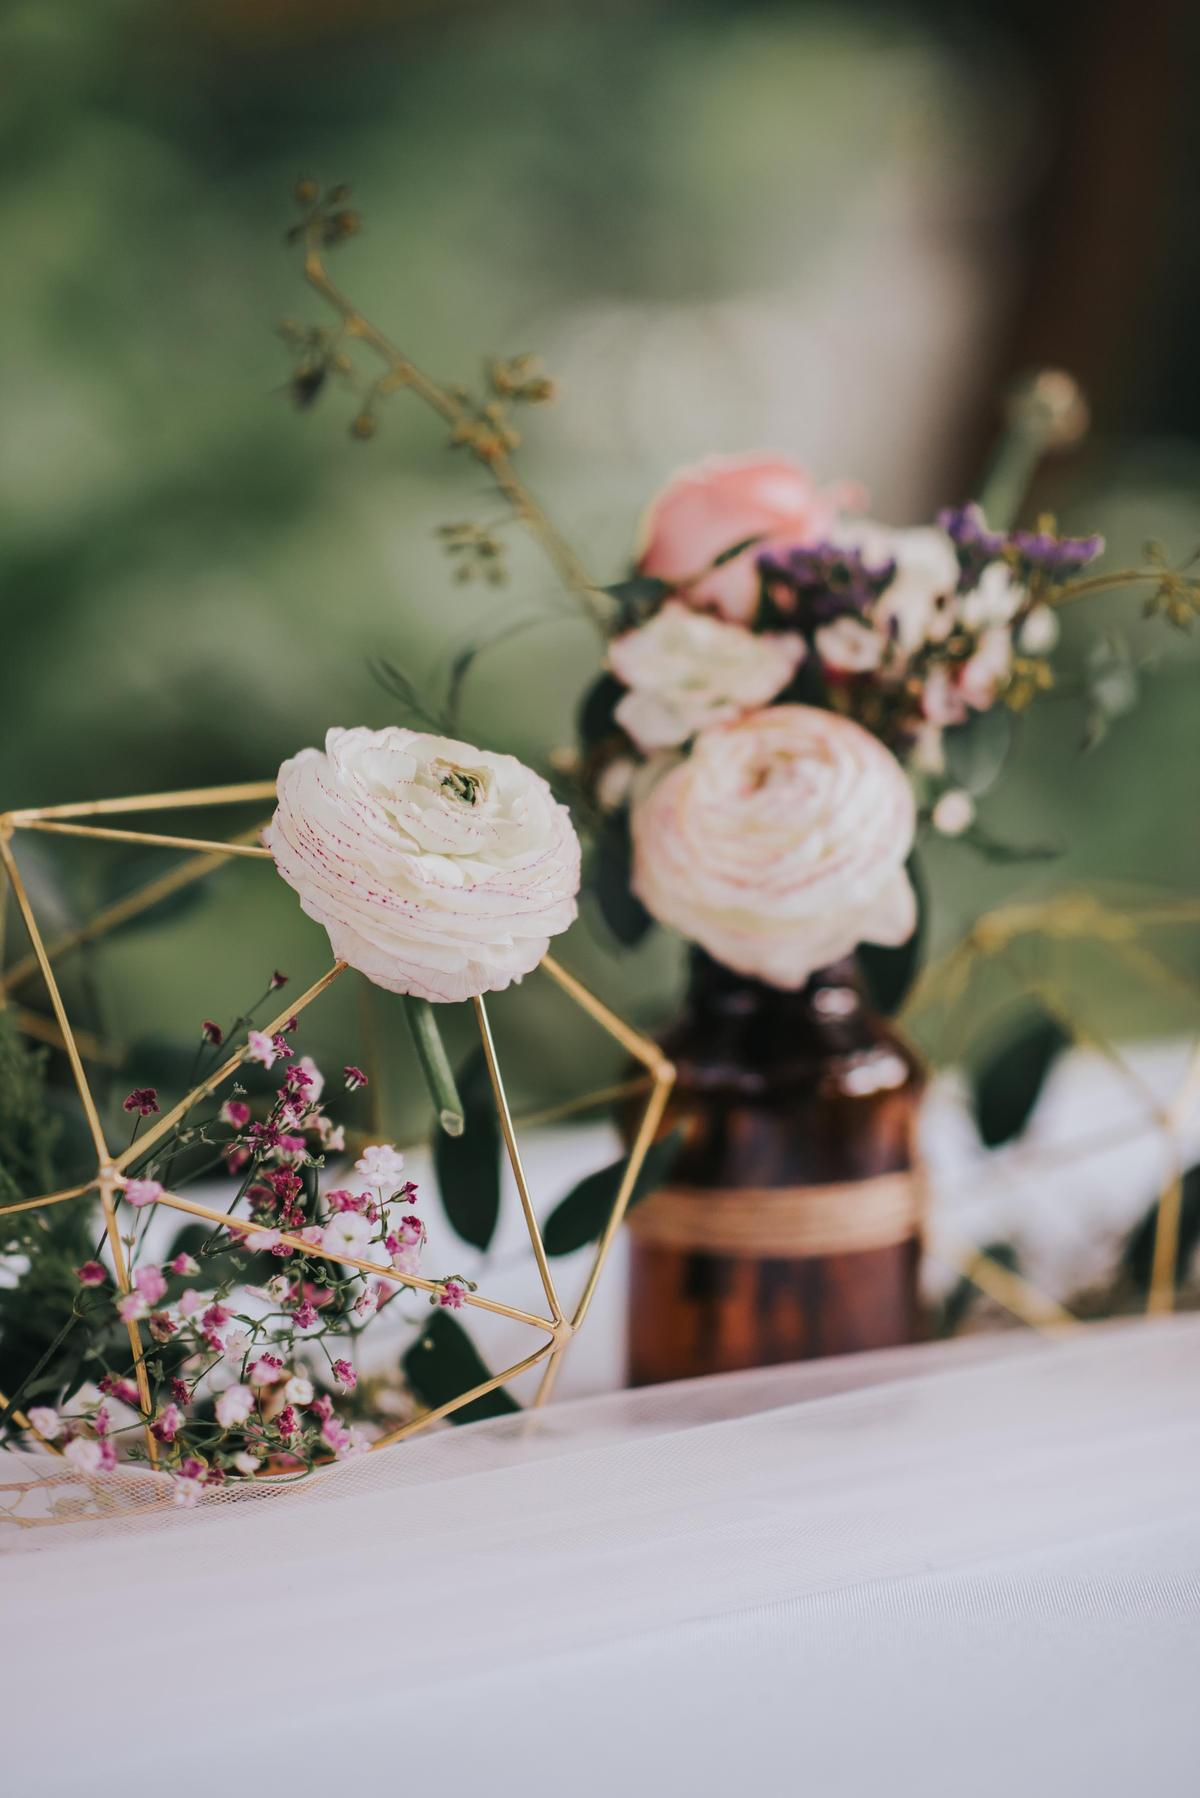 http://www.pwimages.com/images/perfectbride/f6f8619bc44b4a8d21992e1e0046a998-21stFeb17-009.jpg